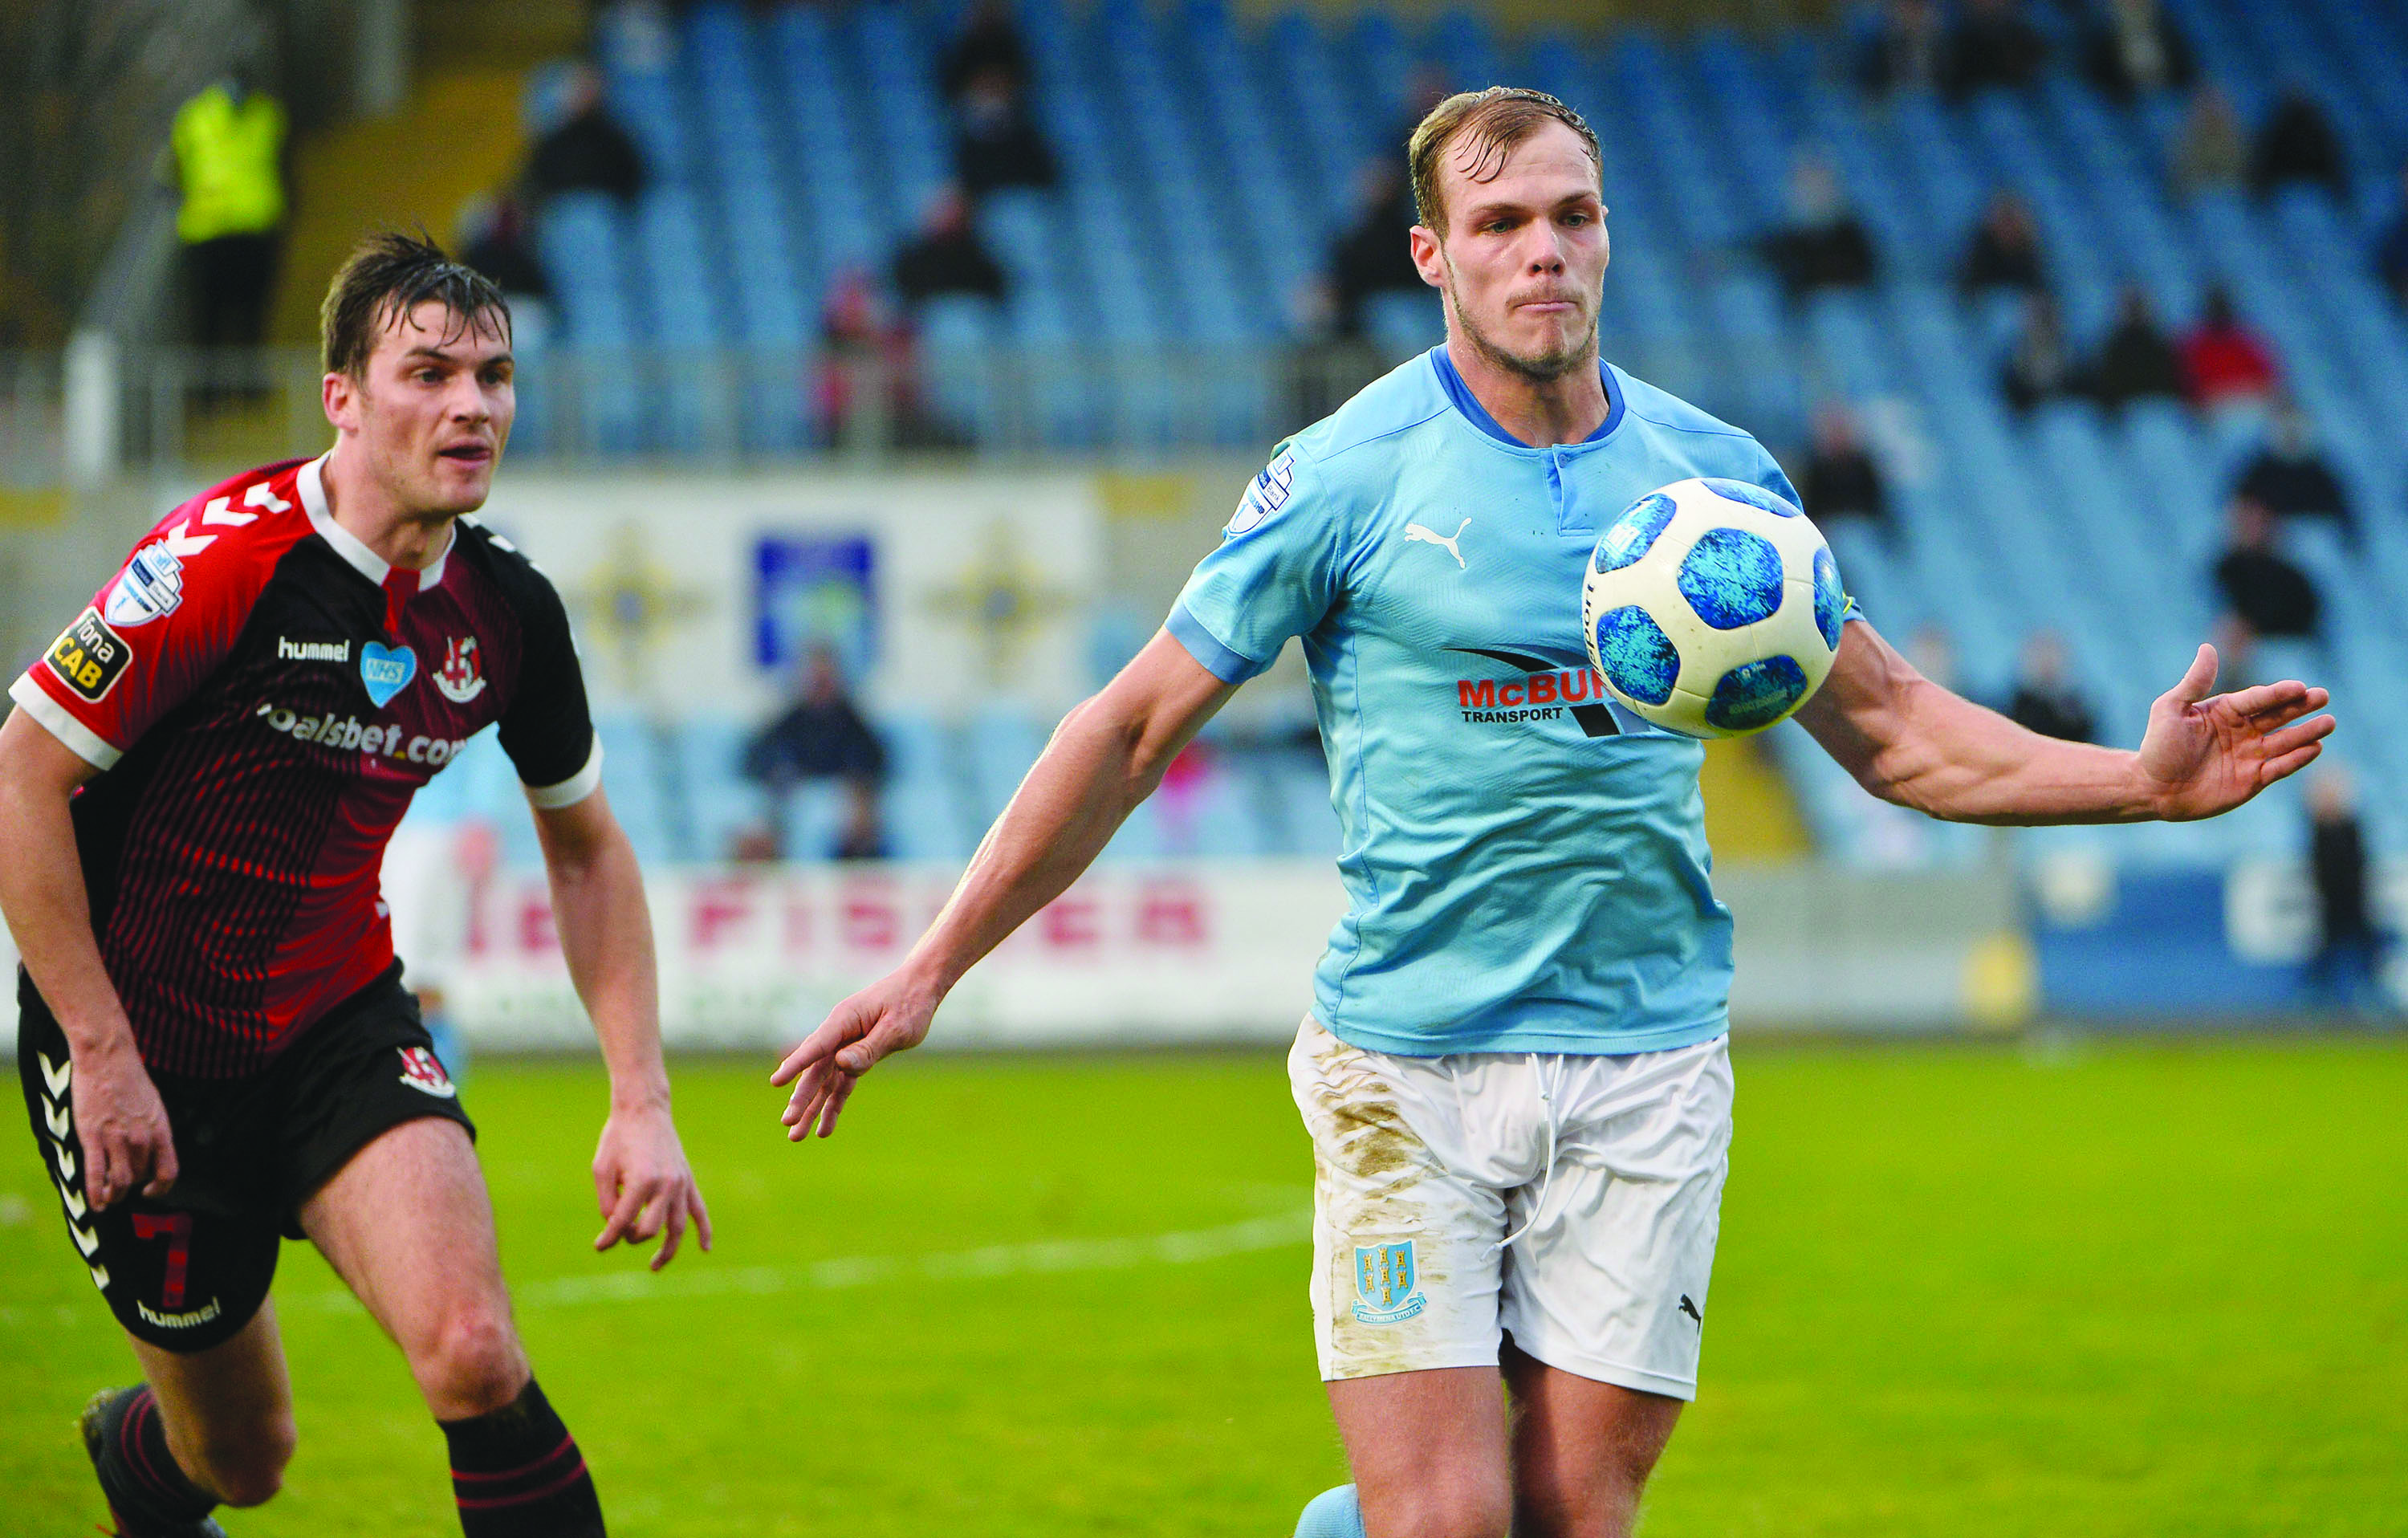 Leroy Millar completed the rout for Ballymena United at Solitude on Tuesday